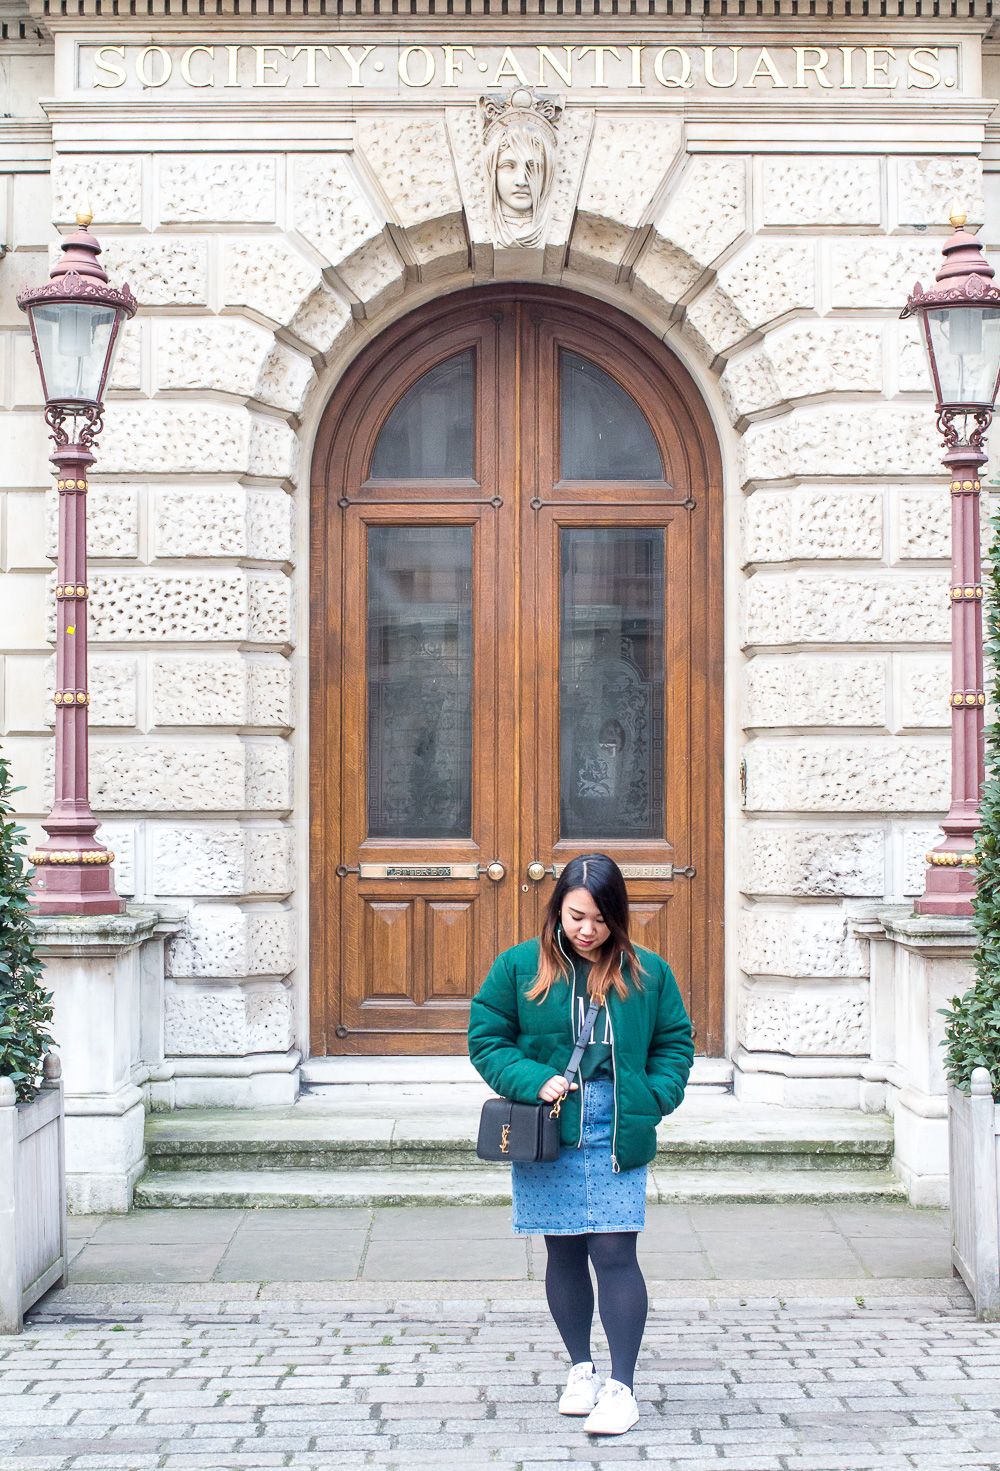 Royal Academy Antiquities outfit